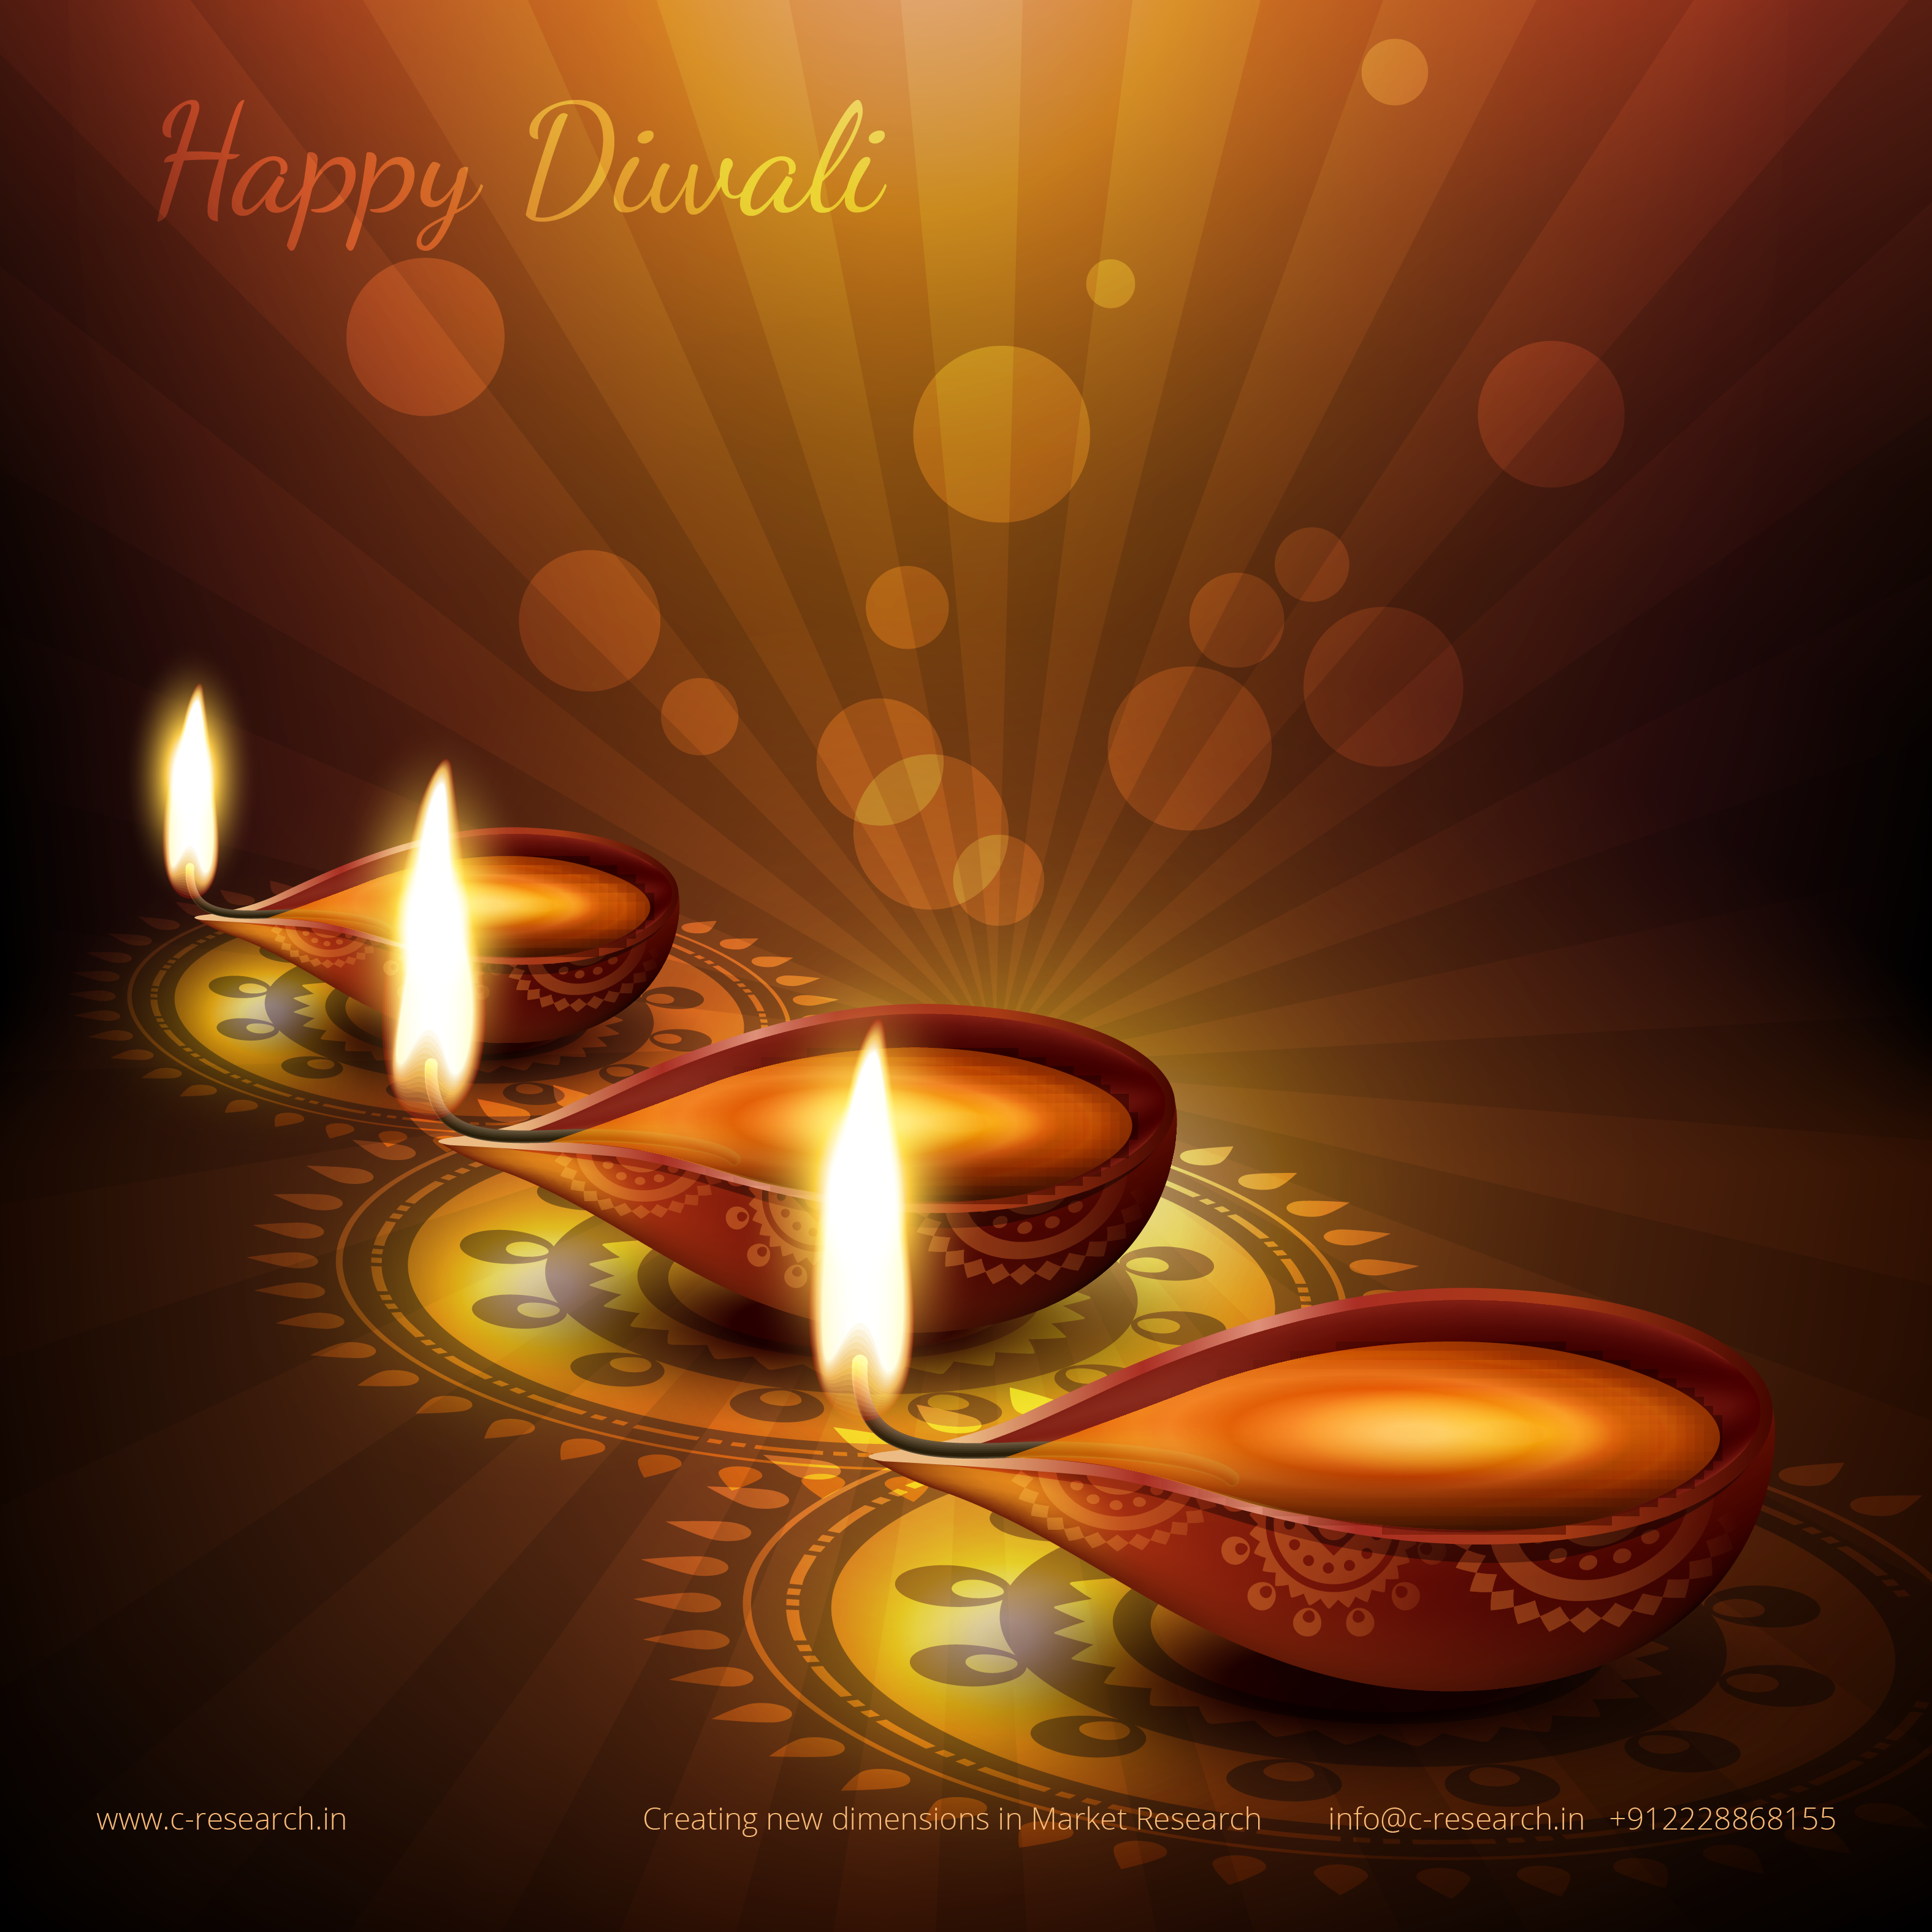 Centaur research wishes happy diwali in advance to all our esteemed centaur research wishes happy diwali in advance to all our esteemed clients partners kristyandbryce Image collections